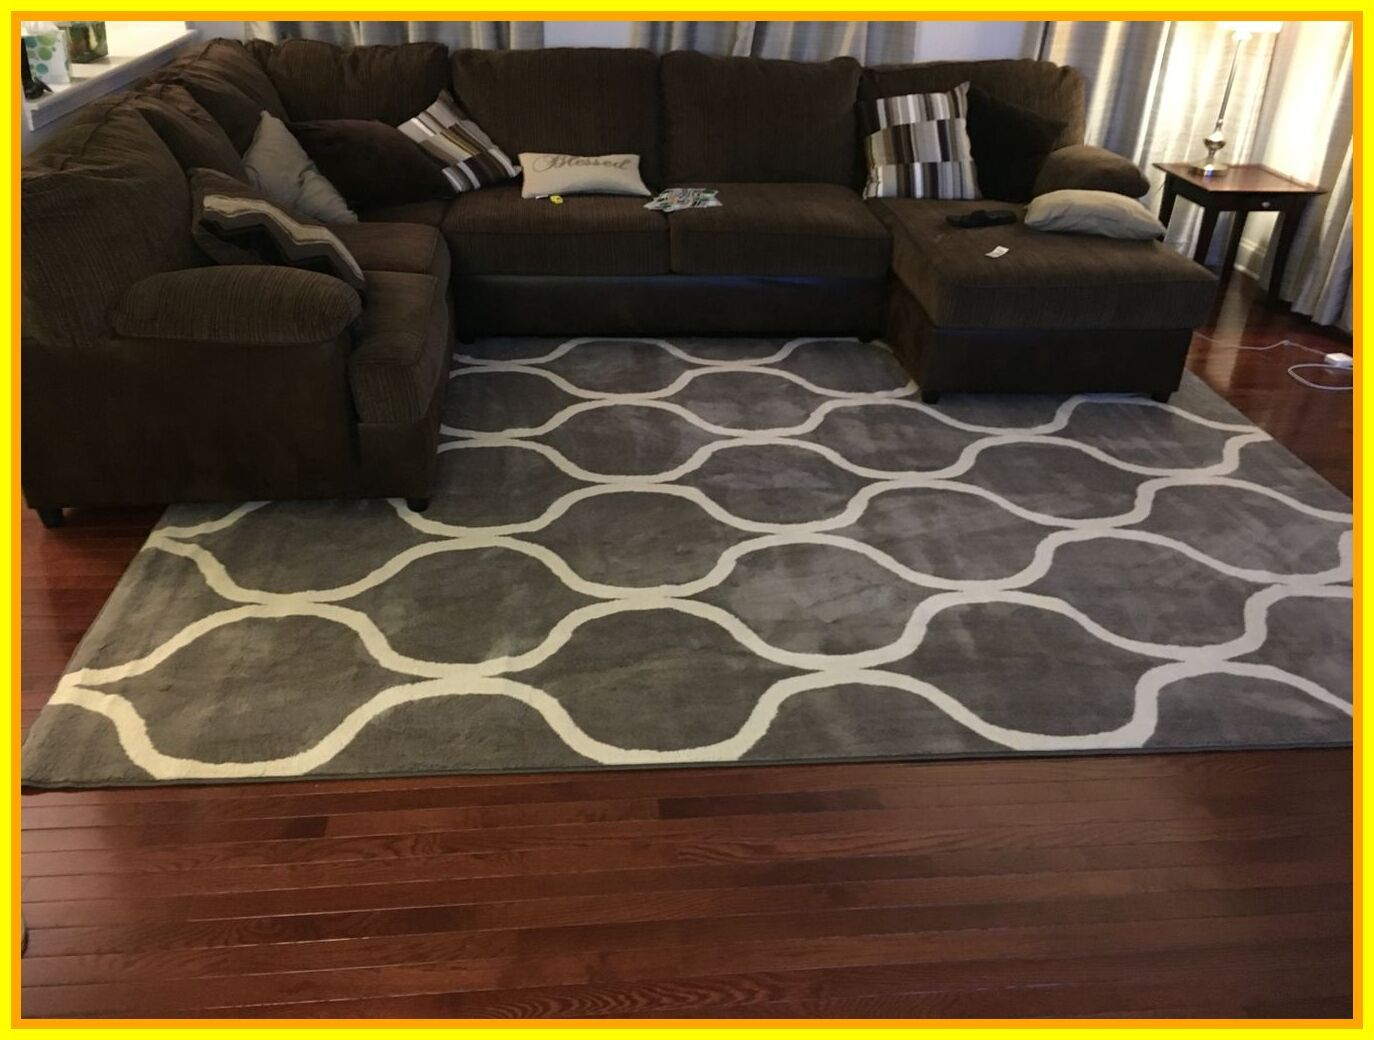 55 Reference Of Brown Leather Couch With Grey Area Rug In